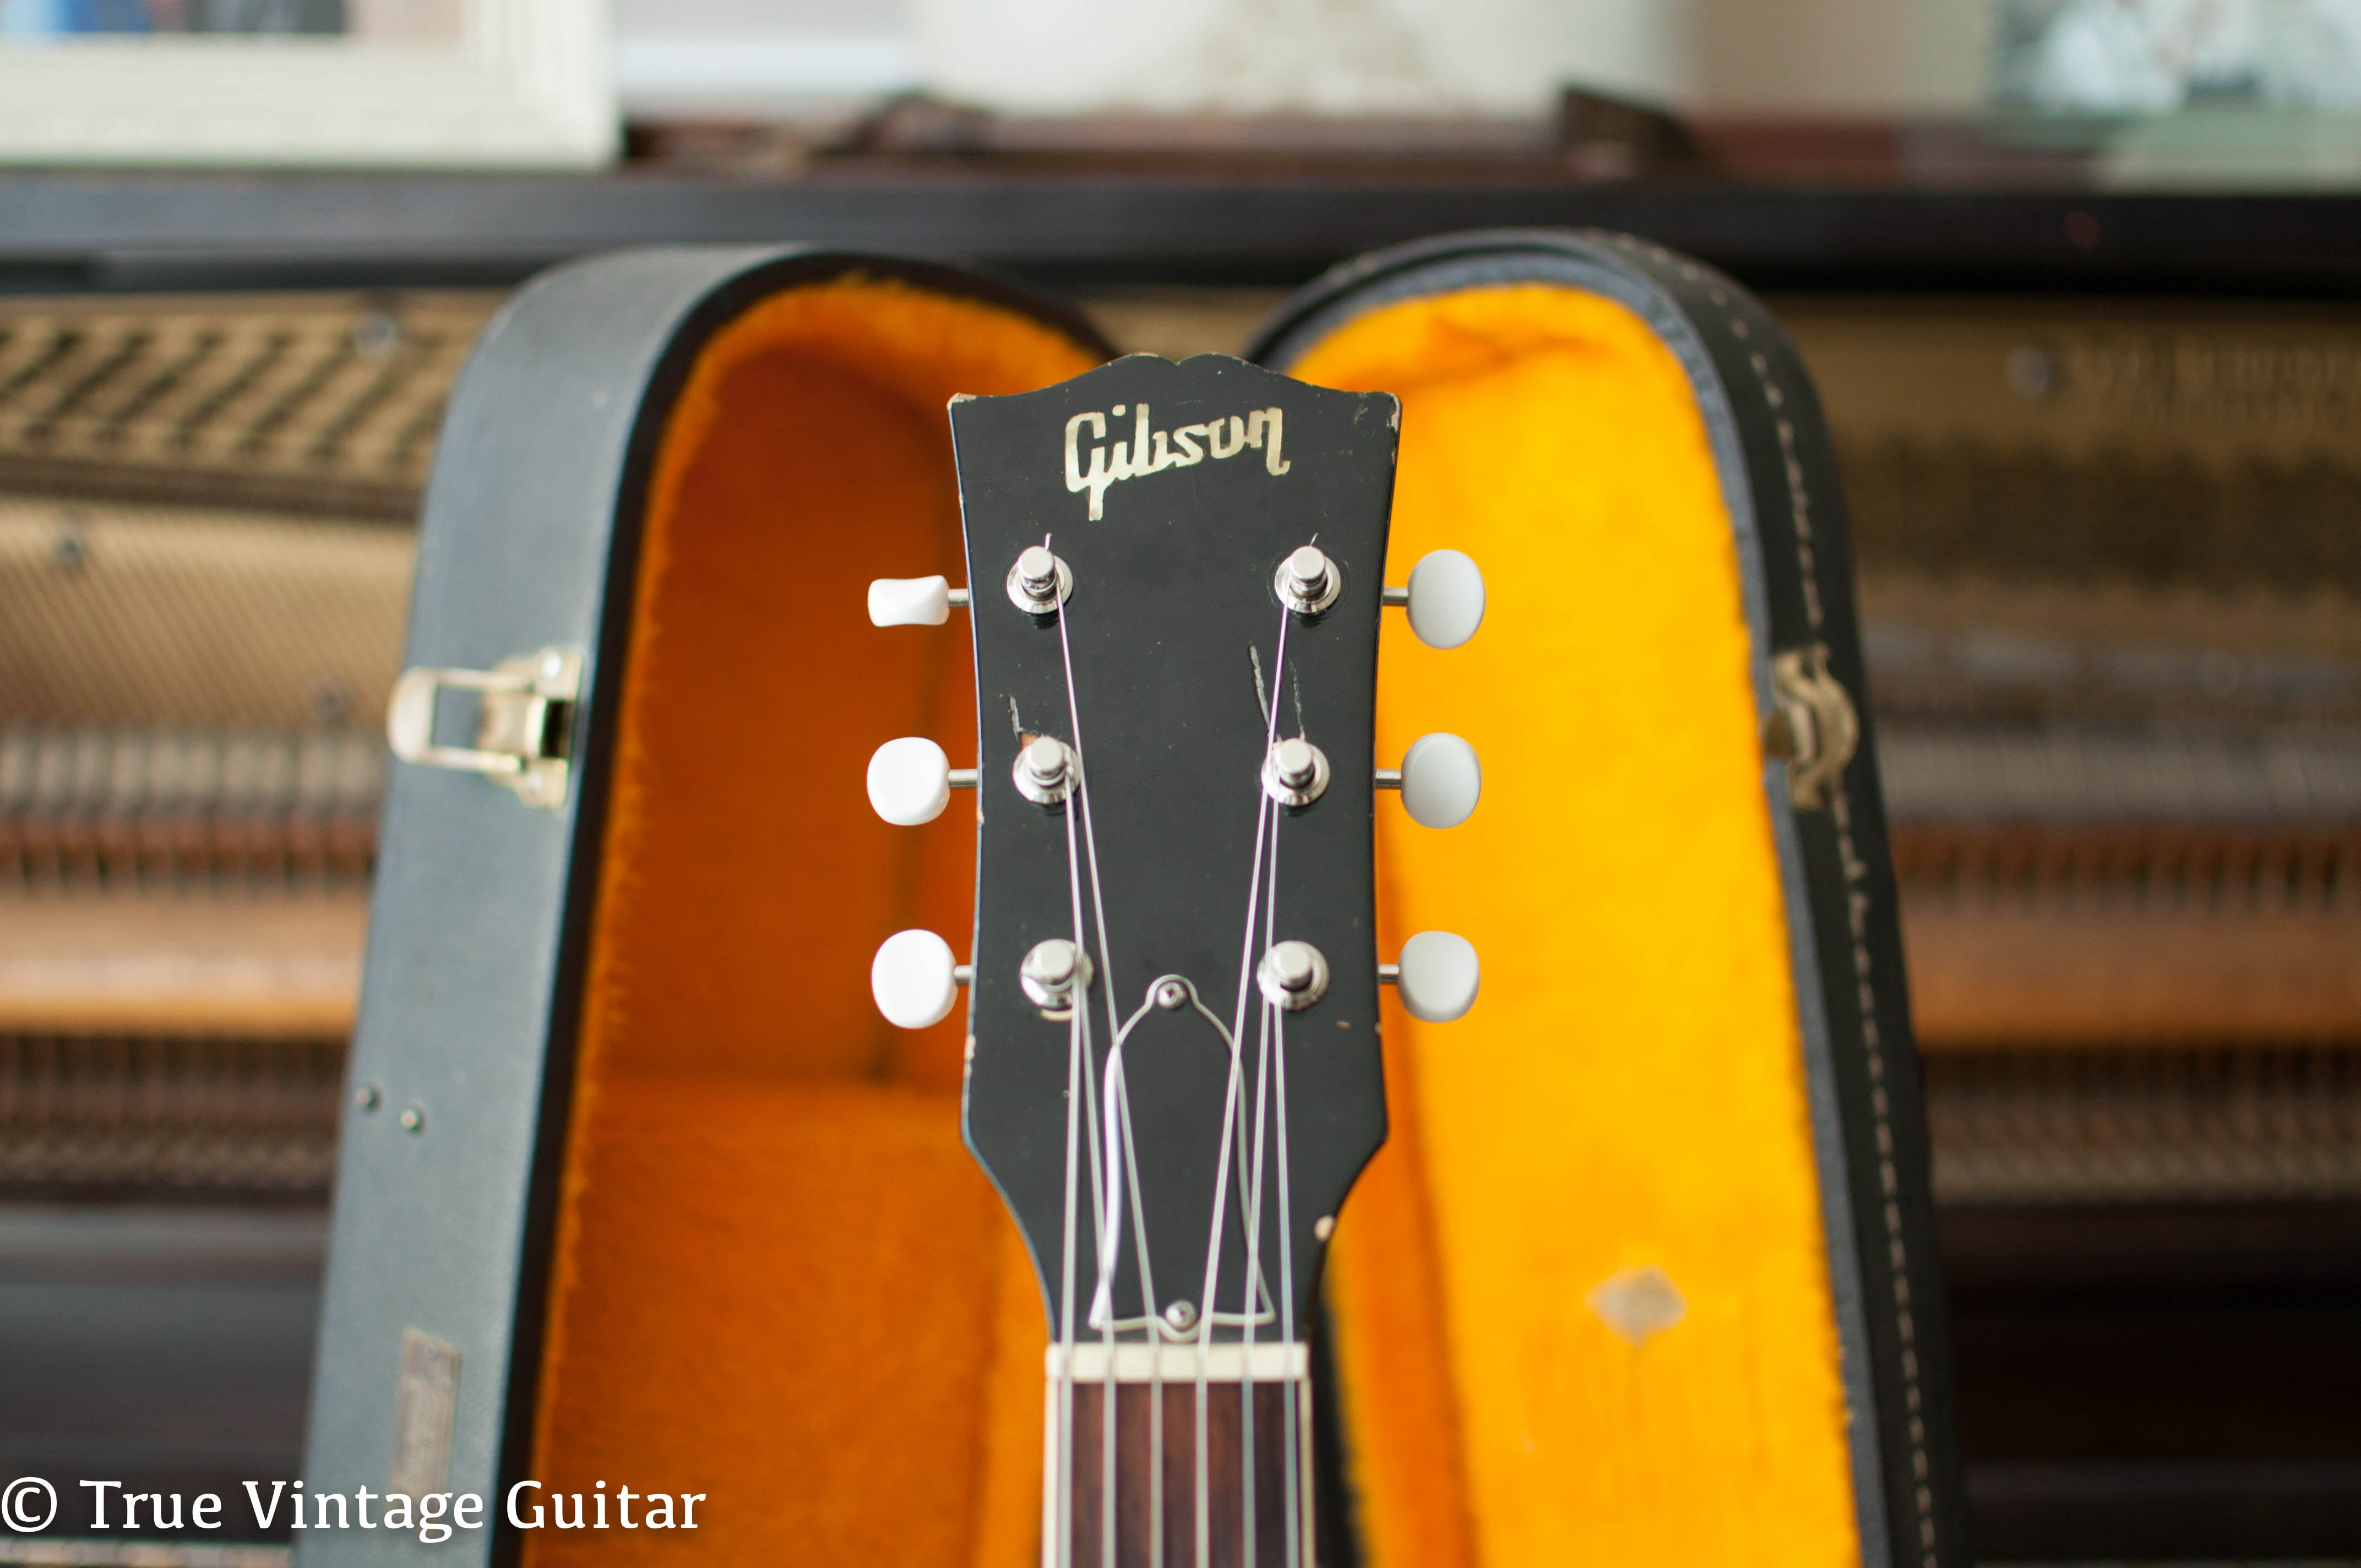 Headstock, pearl Gibson logo, Vintage 1966 Gibson ES-330 electric guitar